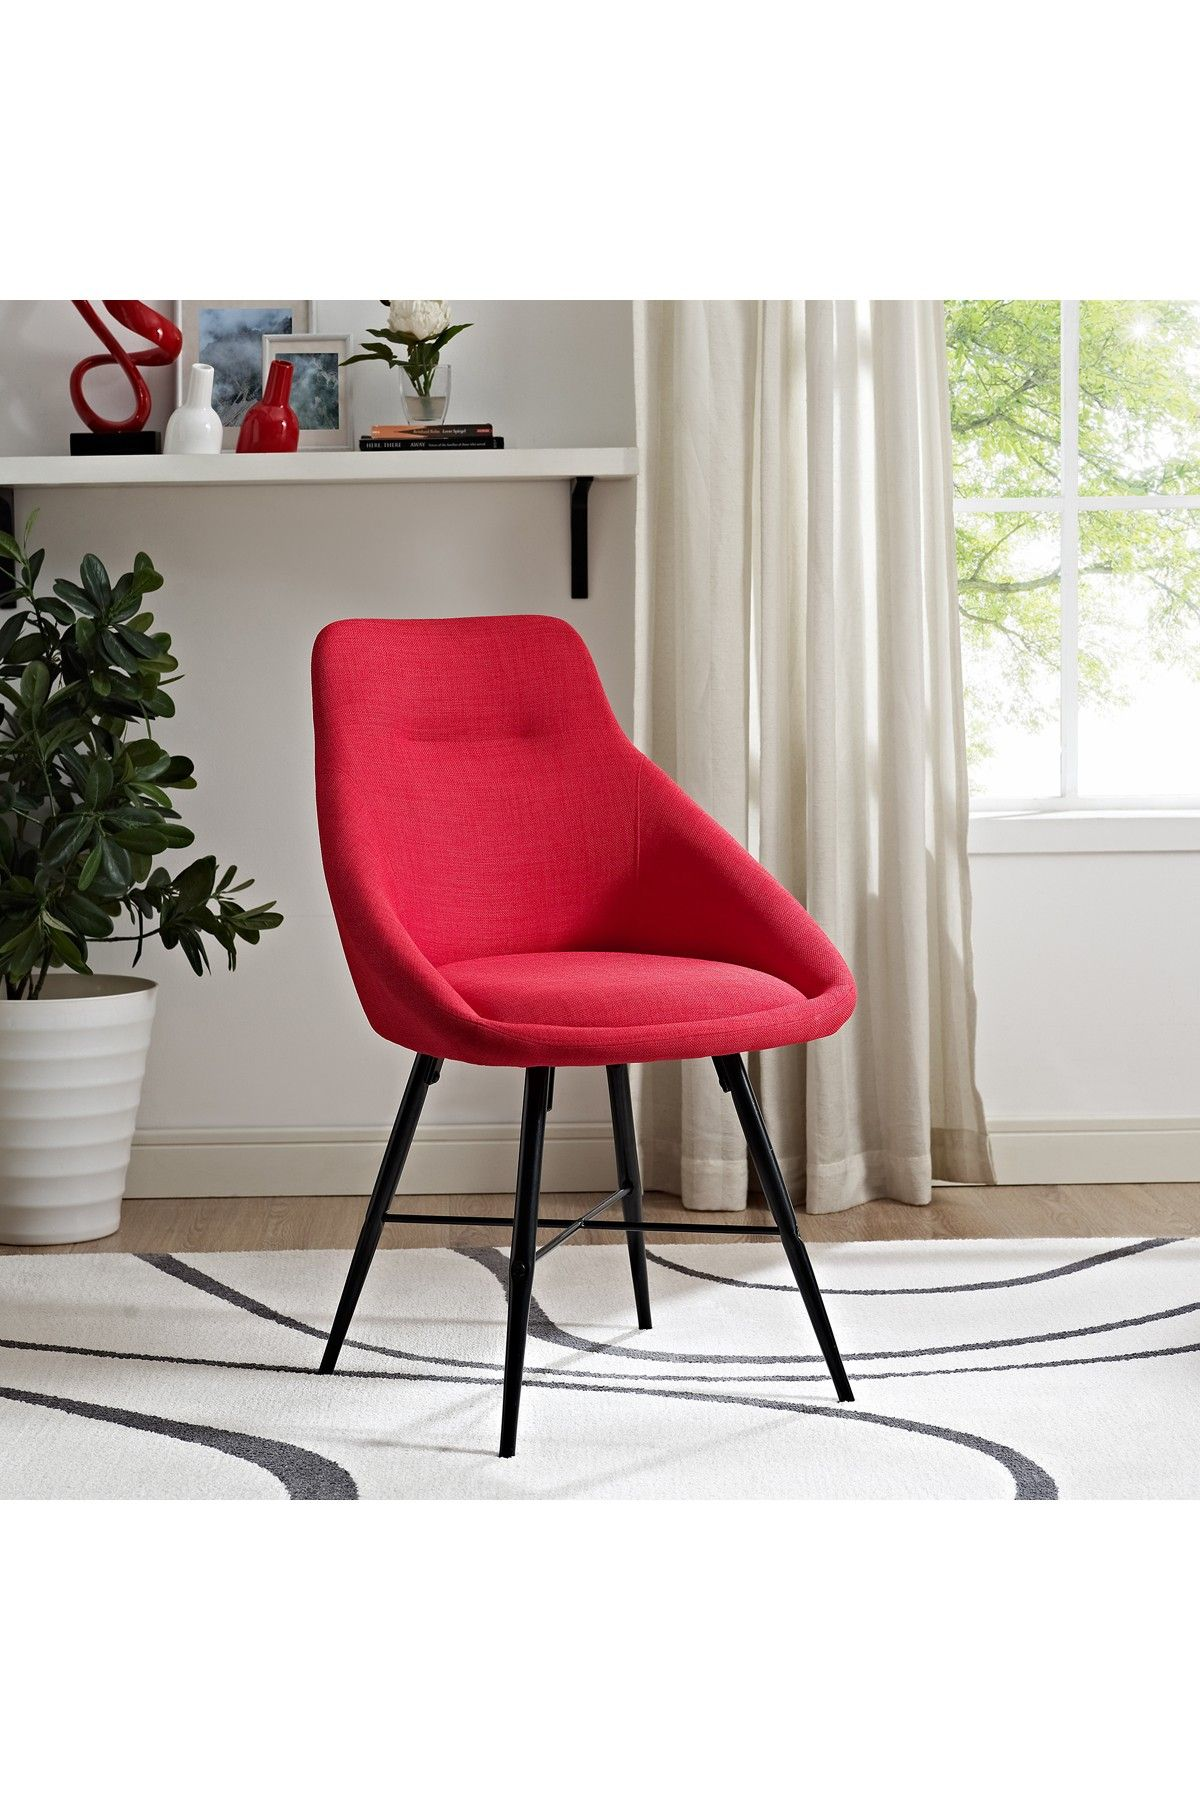 Walker Edison Furniture pany Urban Upholstered Red Side Chair